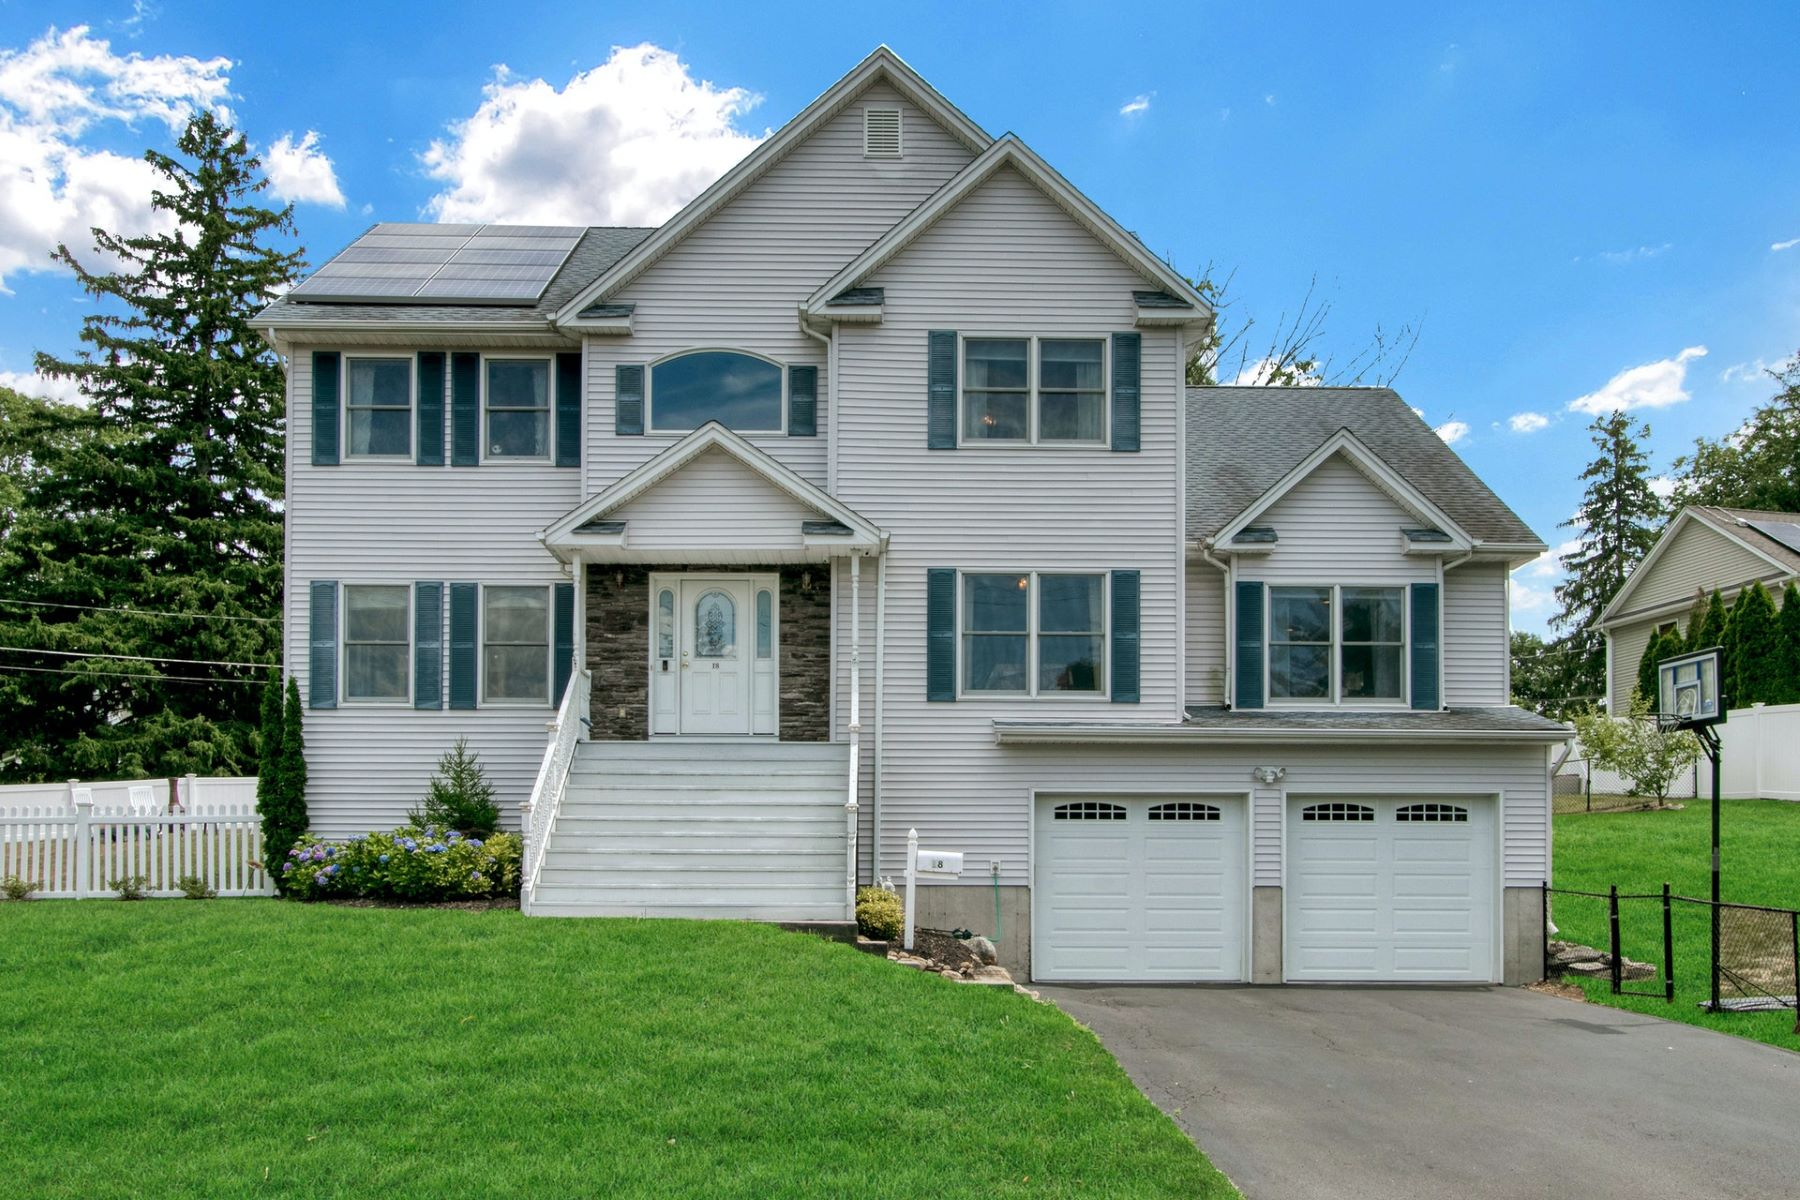 Single Family Homes for Sale at Custom Built Colonial 18 Hillcrest Road Suffern, New York 10901 United States